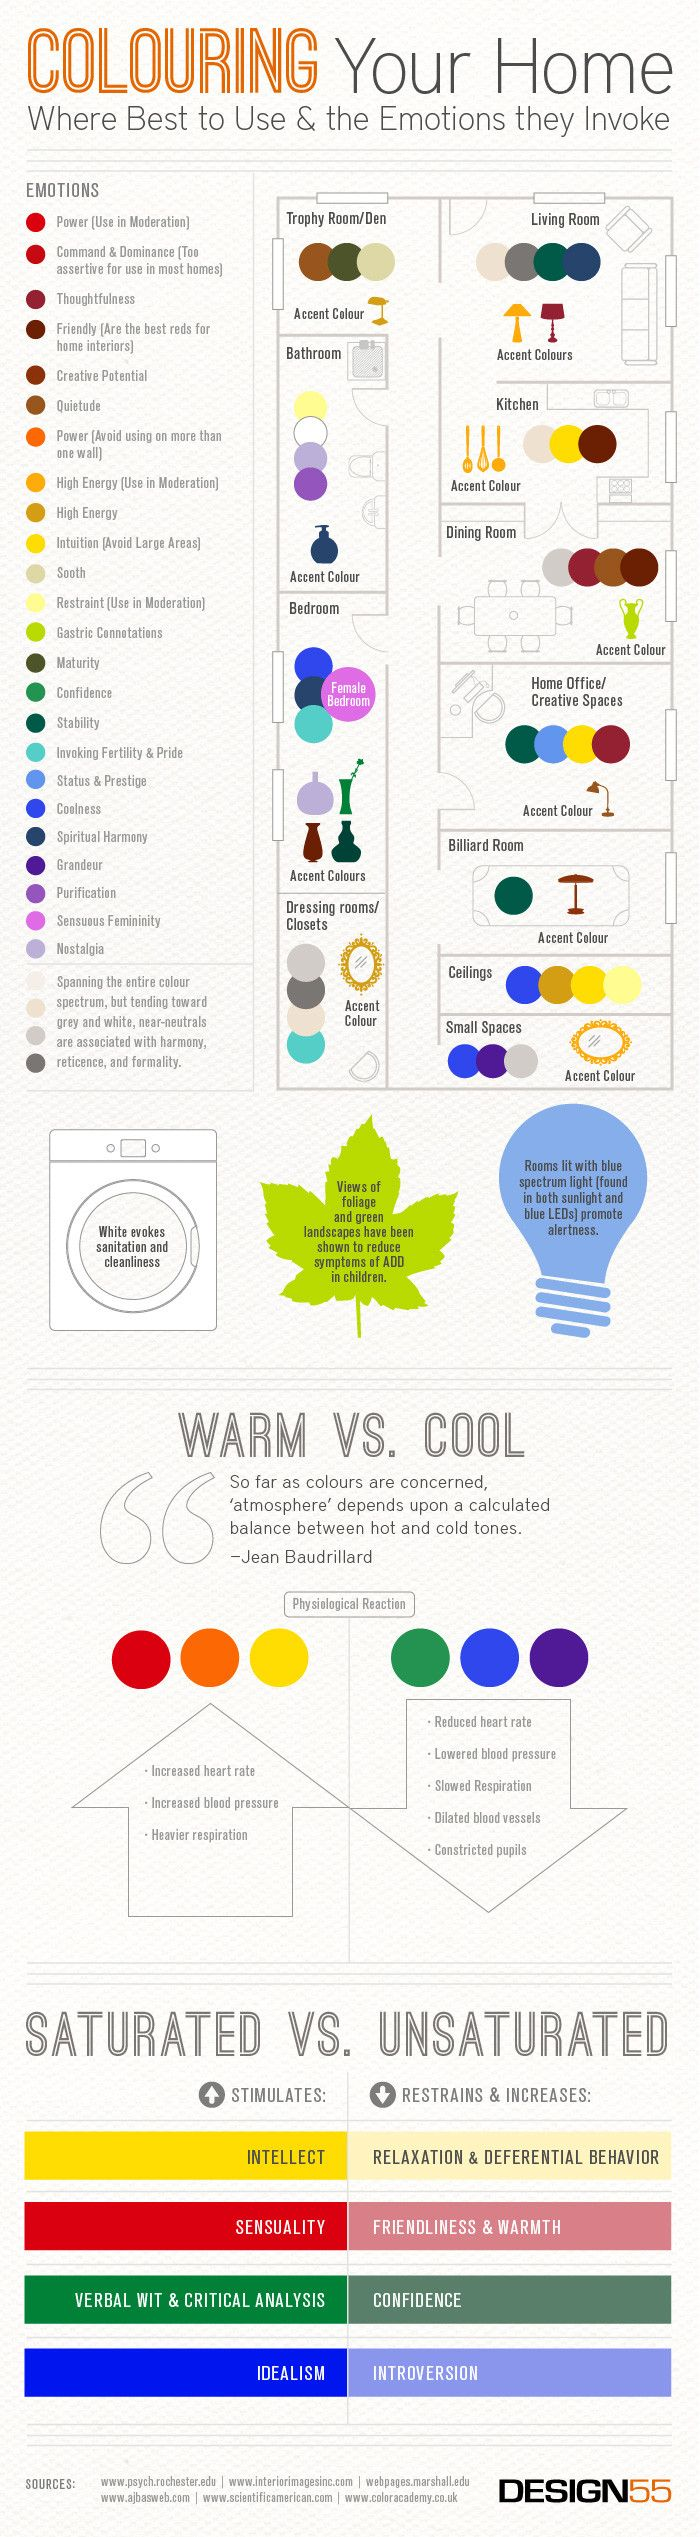 A guide to how to color your home - Imgur